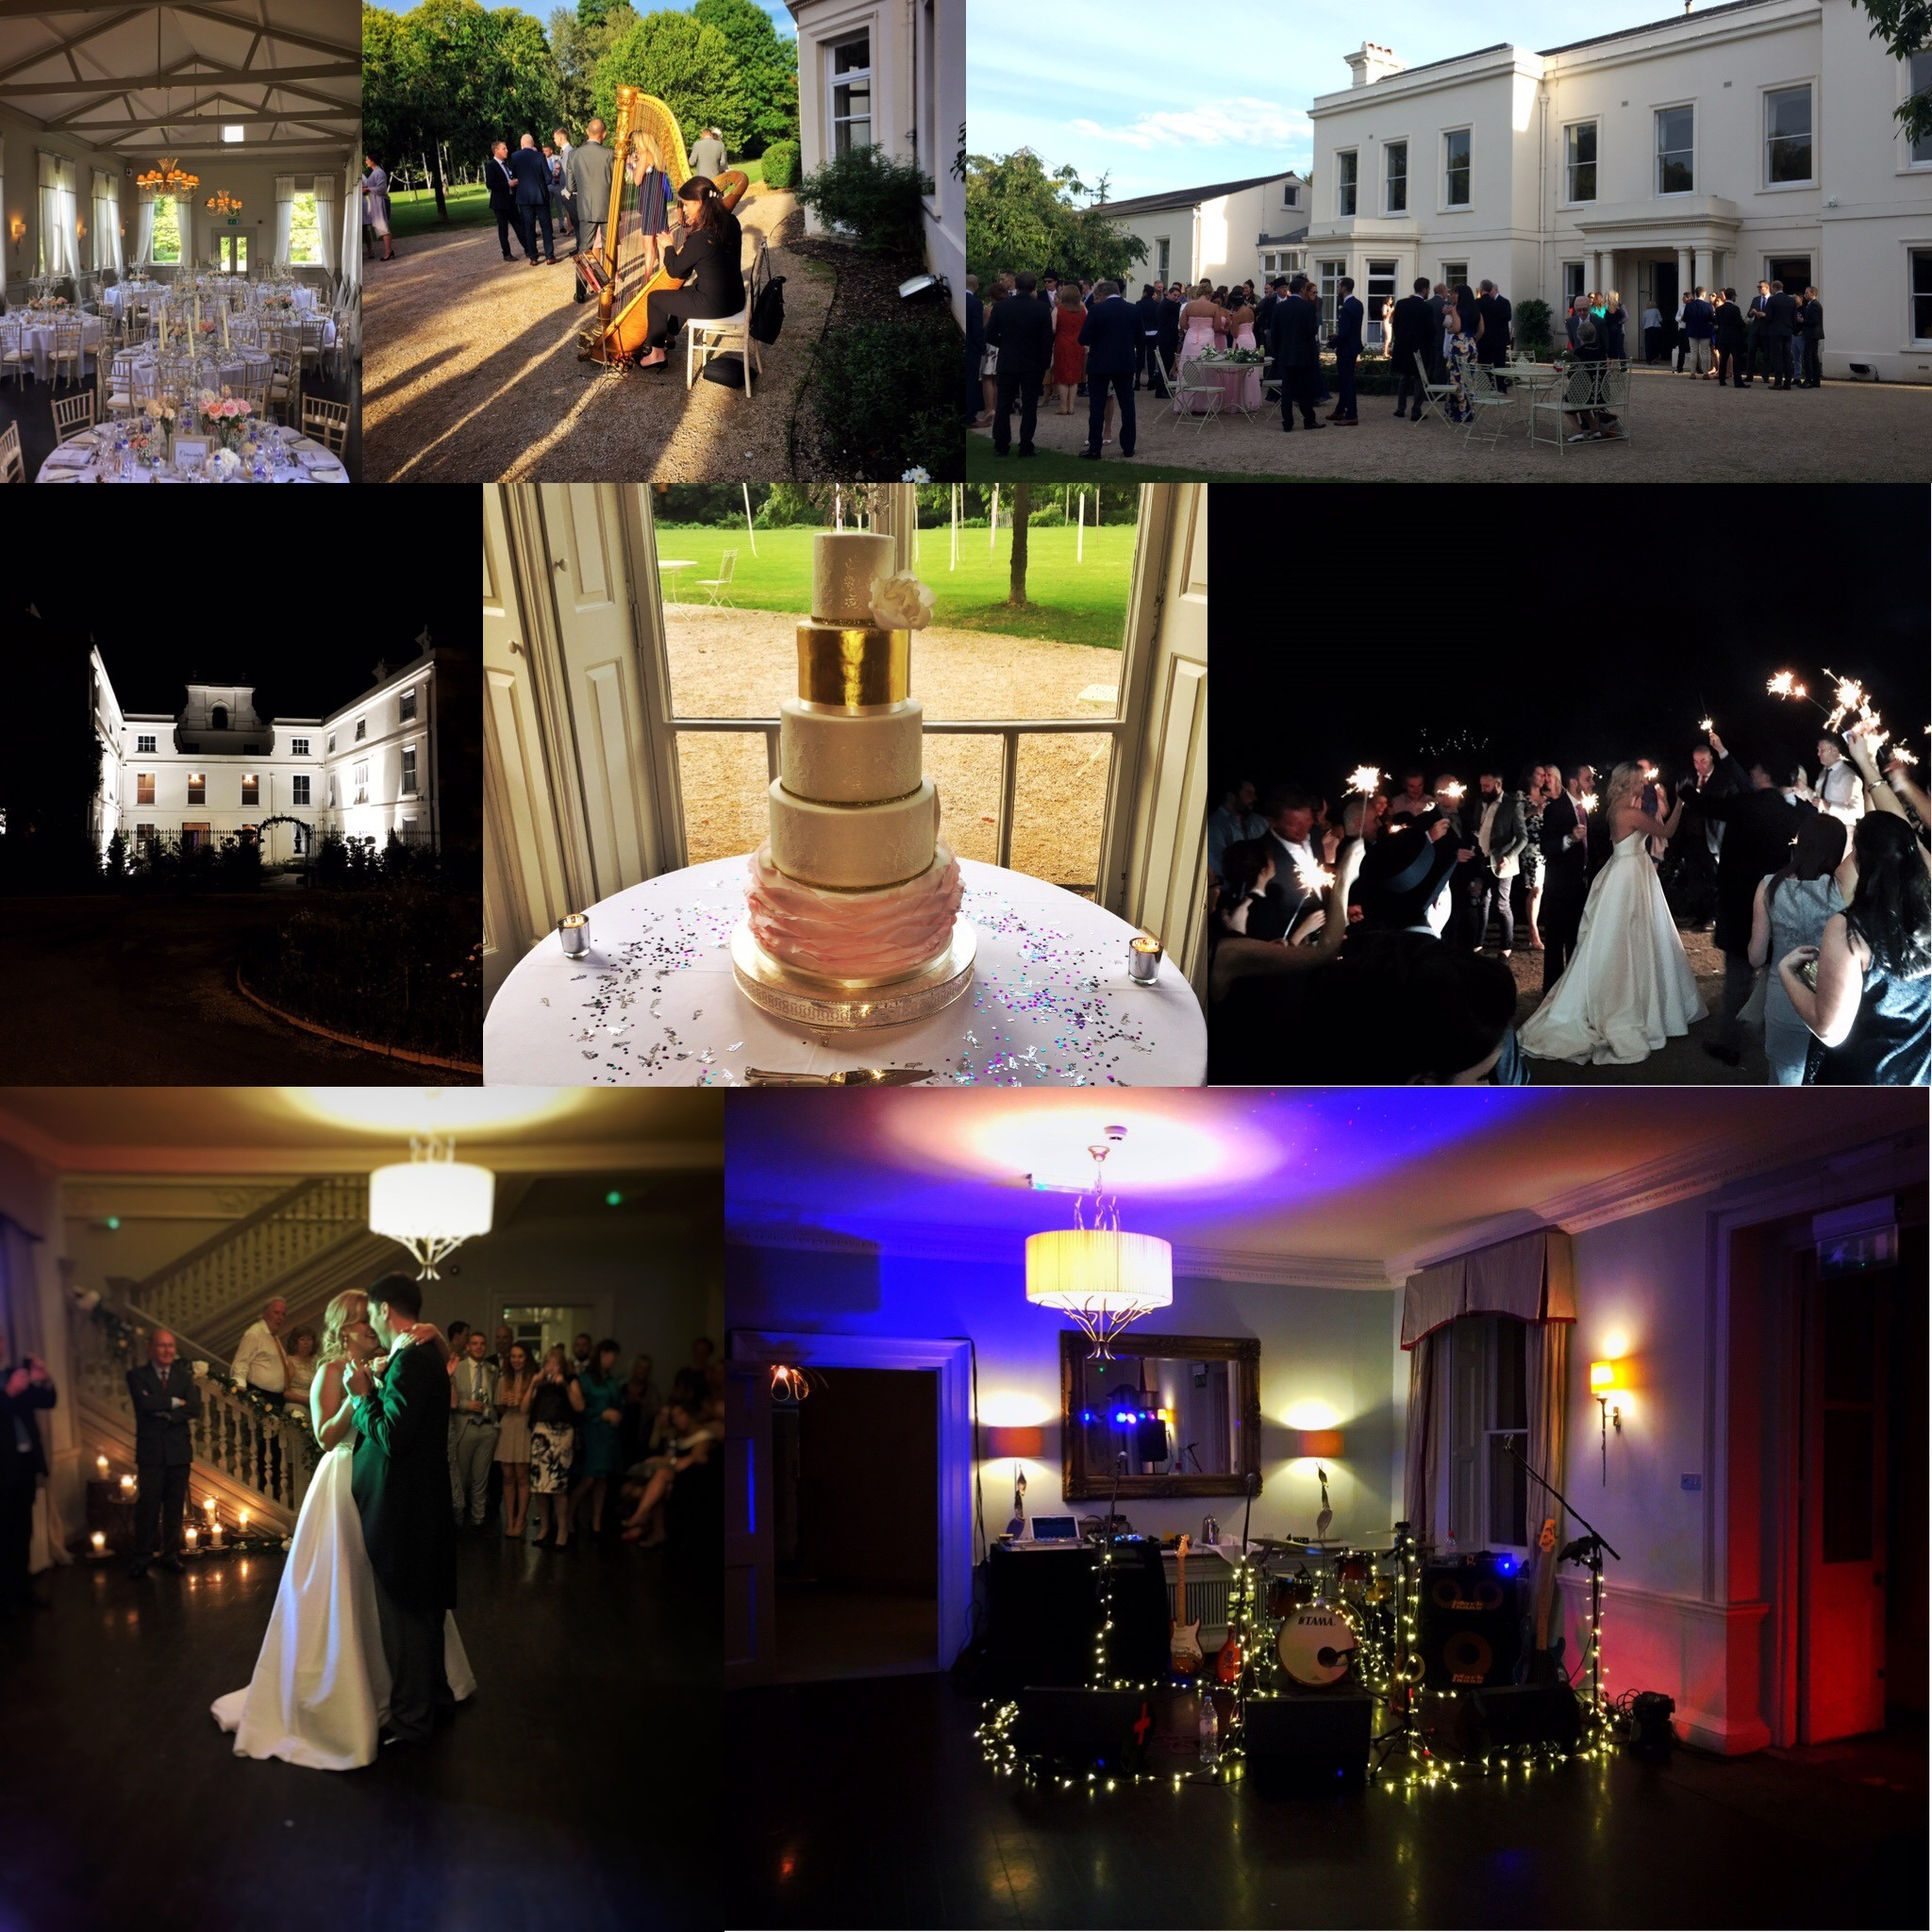 Collage of pictures from a wedding at Morden Hall